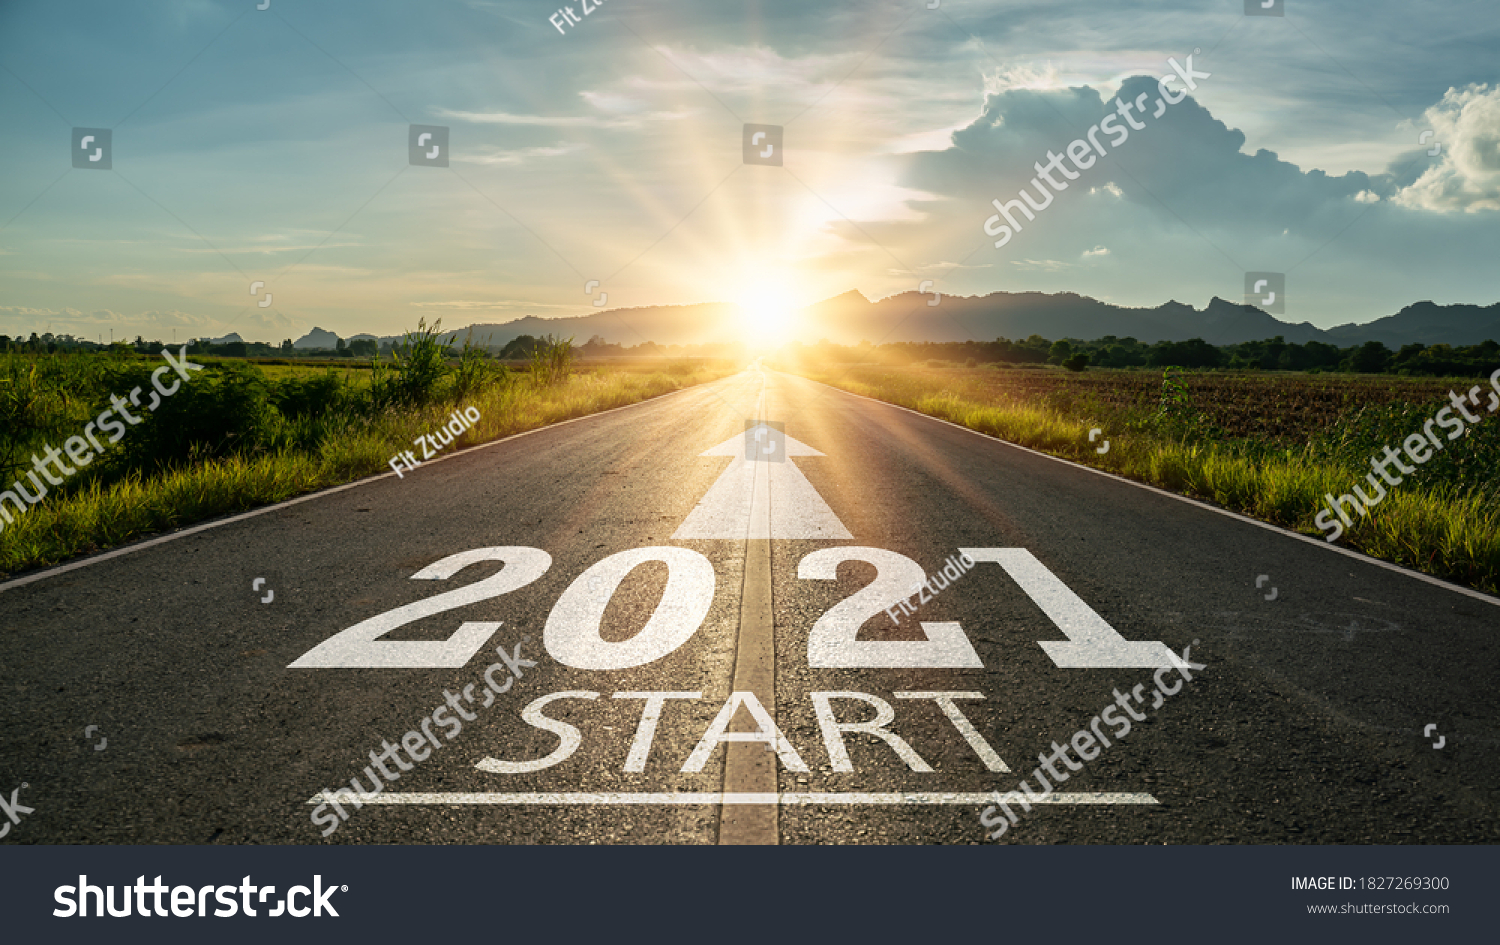 New year 2021 or start straight concept.word 2021 written on the road in the middle of asphalt road at sunset.Concept of planning and challenge or career path,business strategy,opportunity and change #1827269300